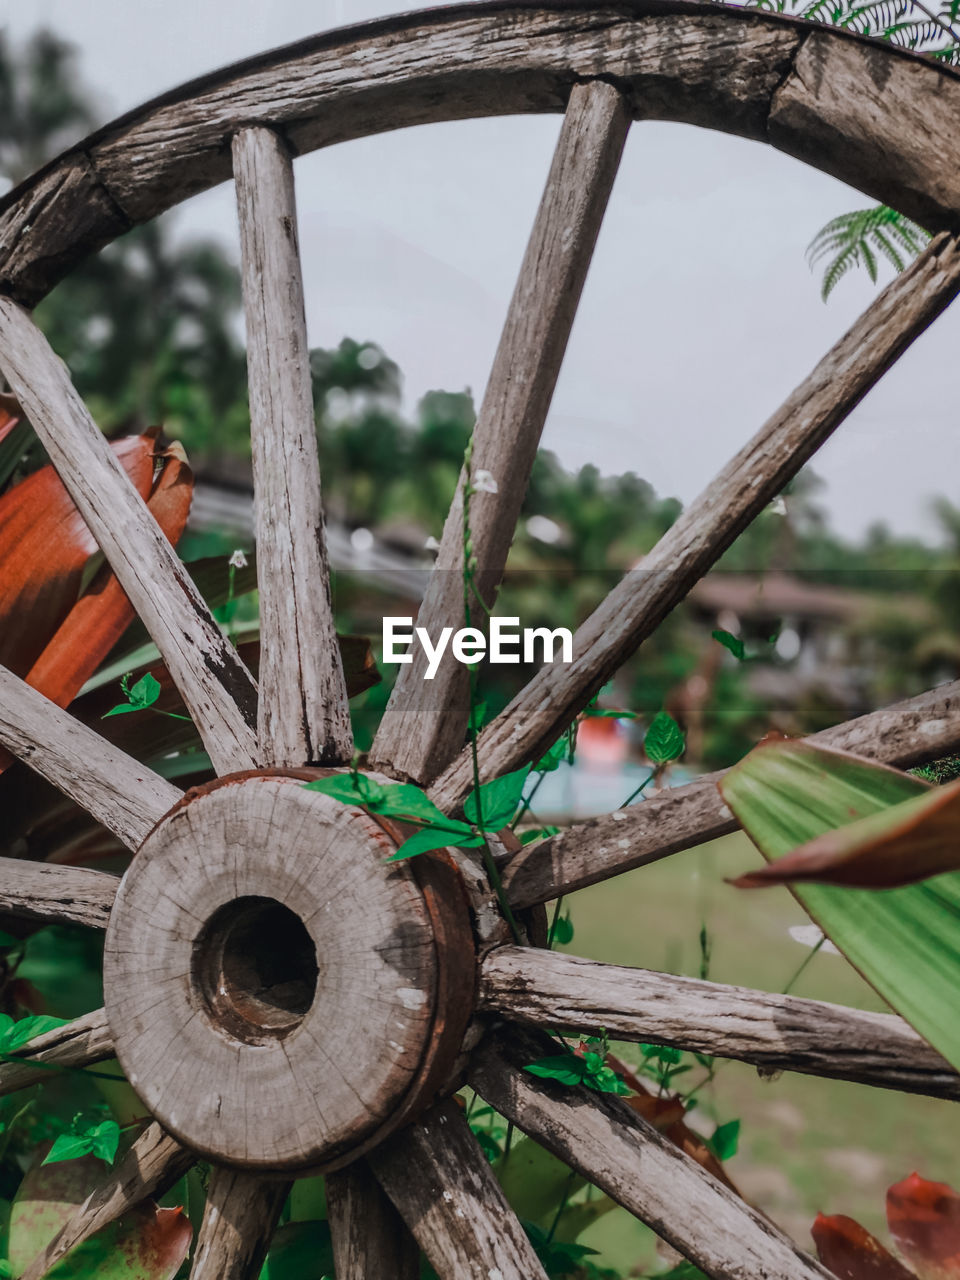 wood - material, wheel, focus on foreground, day, no people, metal, wagon wheel, nature, old, close-up, transportation, plant, outdoors, shape, abandoned, tree, obsolete, weathered, rusty, water, spoke